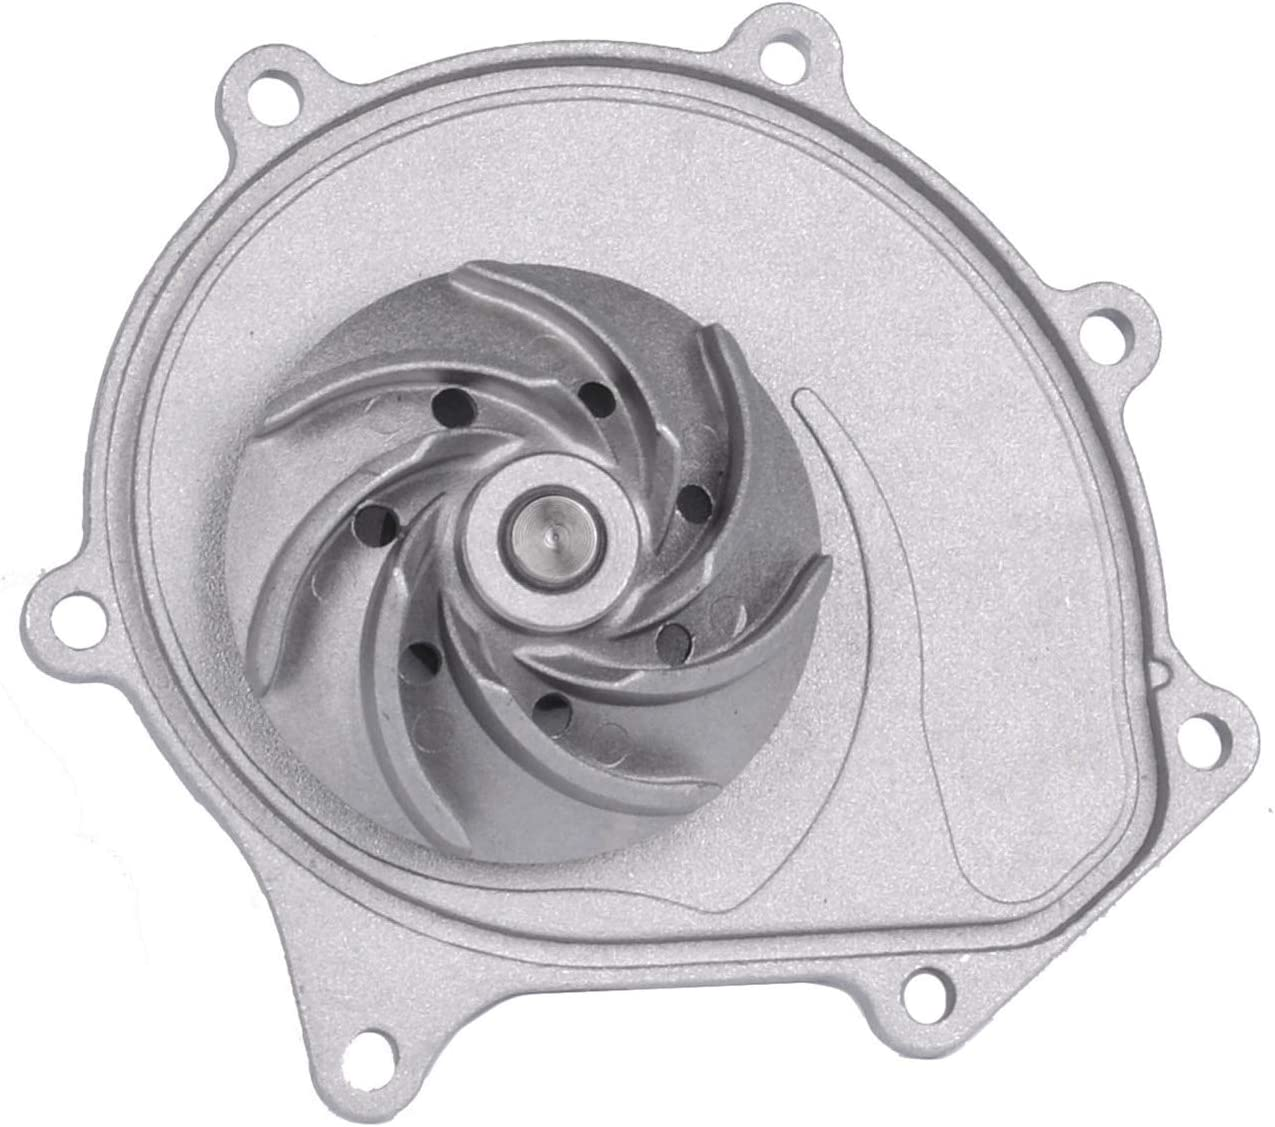 Water Pumps CAROCK Water Pump AW9496 for 2002-2005 V6-2.5L Land ...